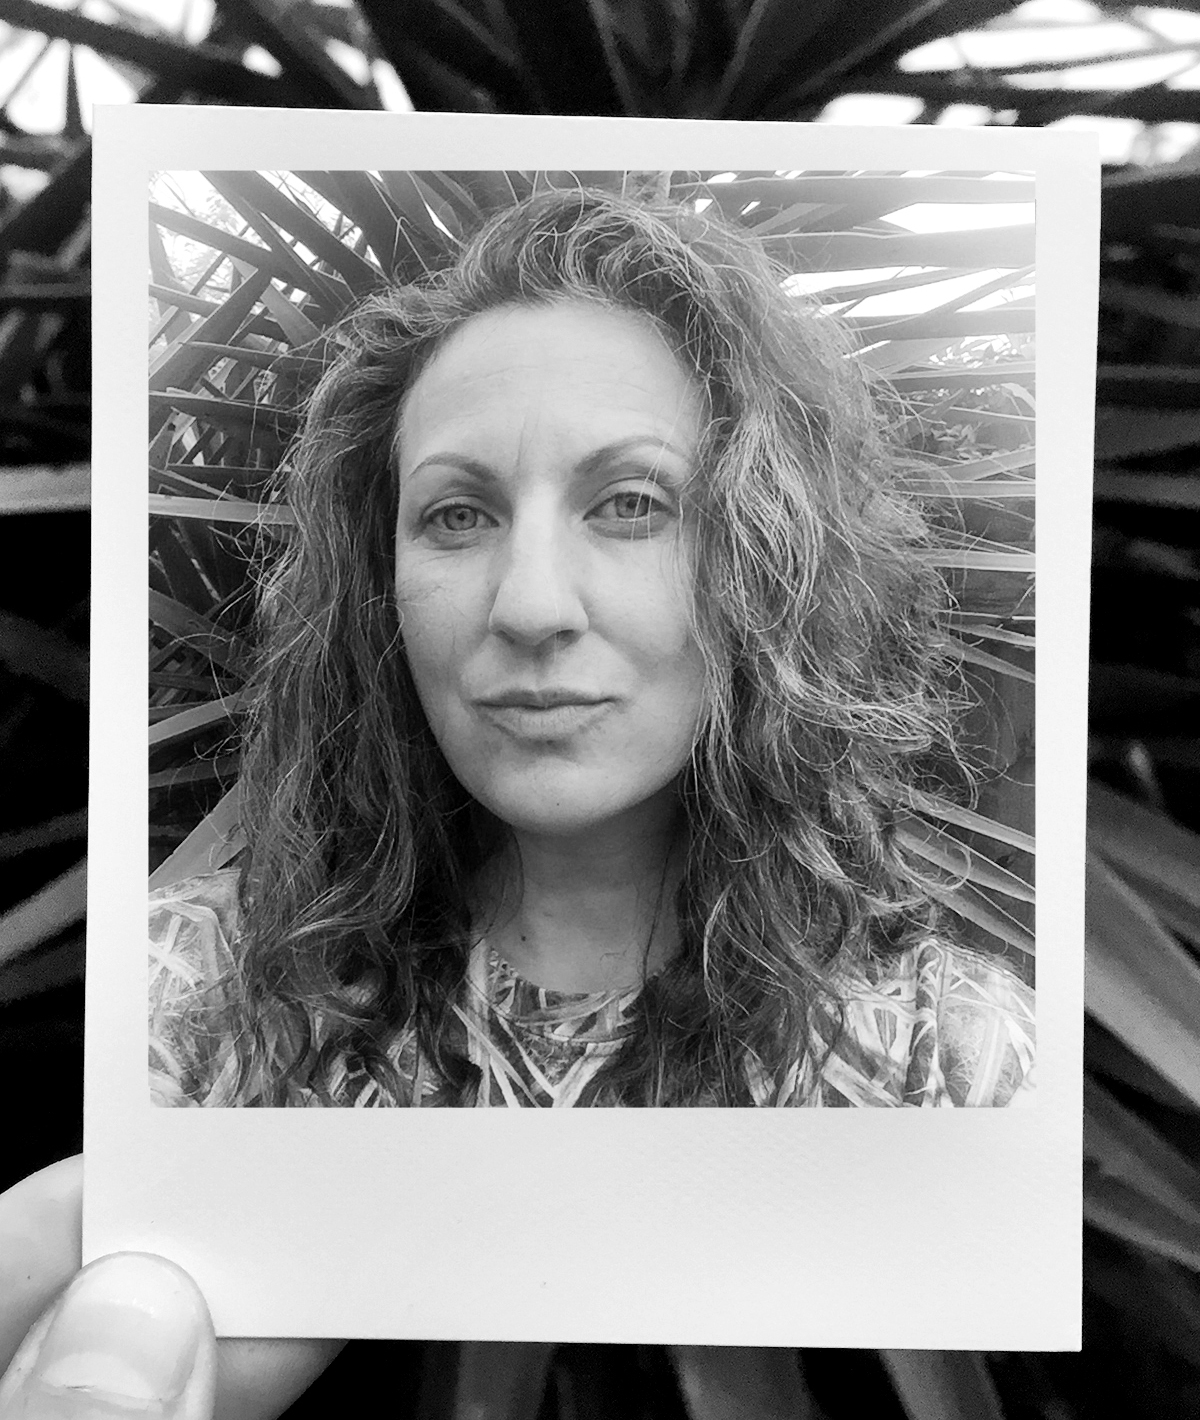 A black and white photo of someone holding a polaroid portrait photo of Aubrey Edwards. She is light-skinned and has long, curly hair, and there's a plant behind her. We can see the tip of someone's thumb and finger holding the polaroid. Photo courtesy of Aubrey Edwards.